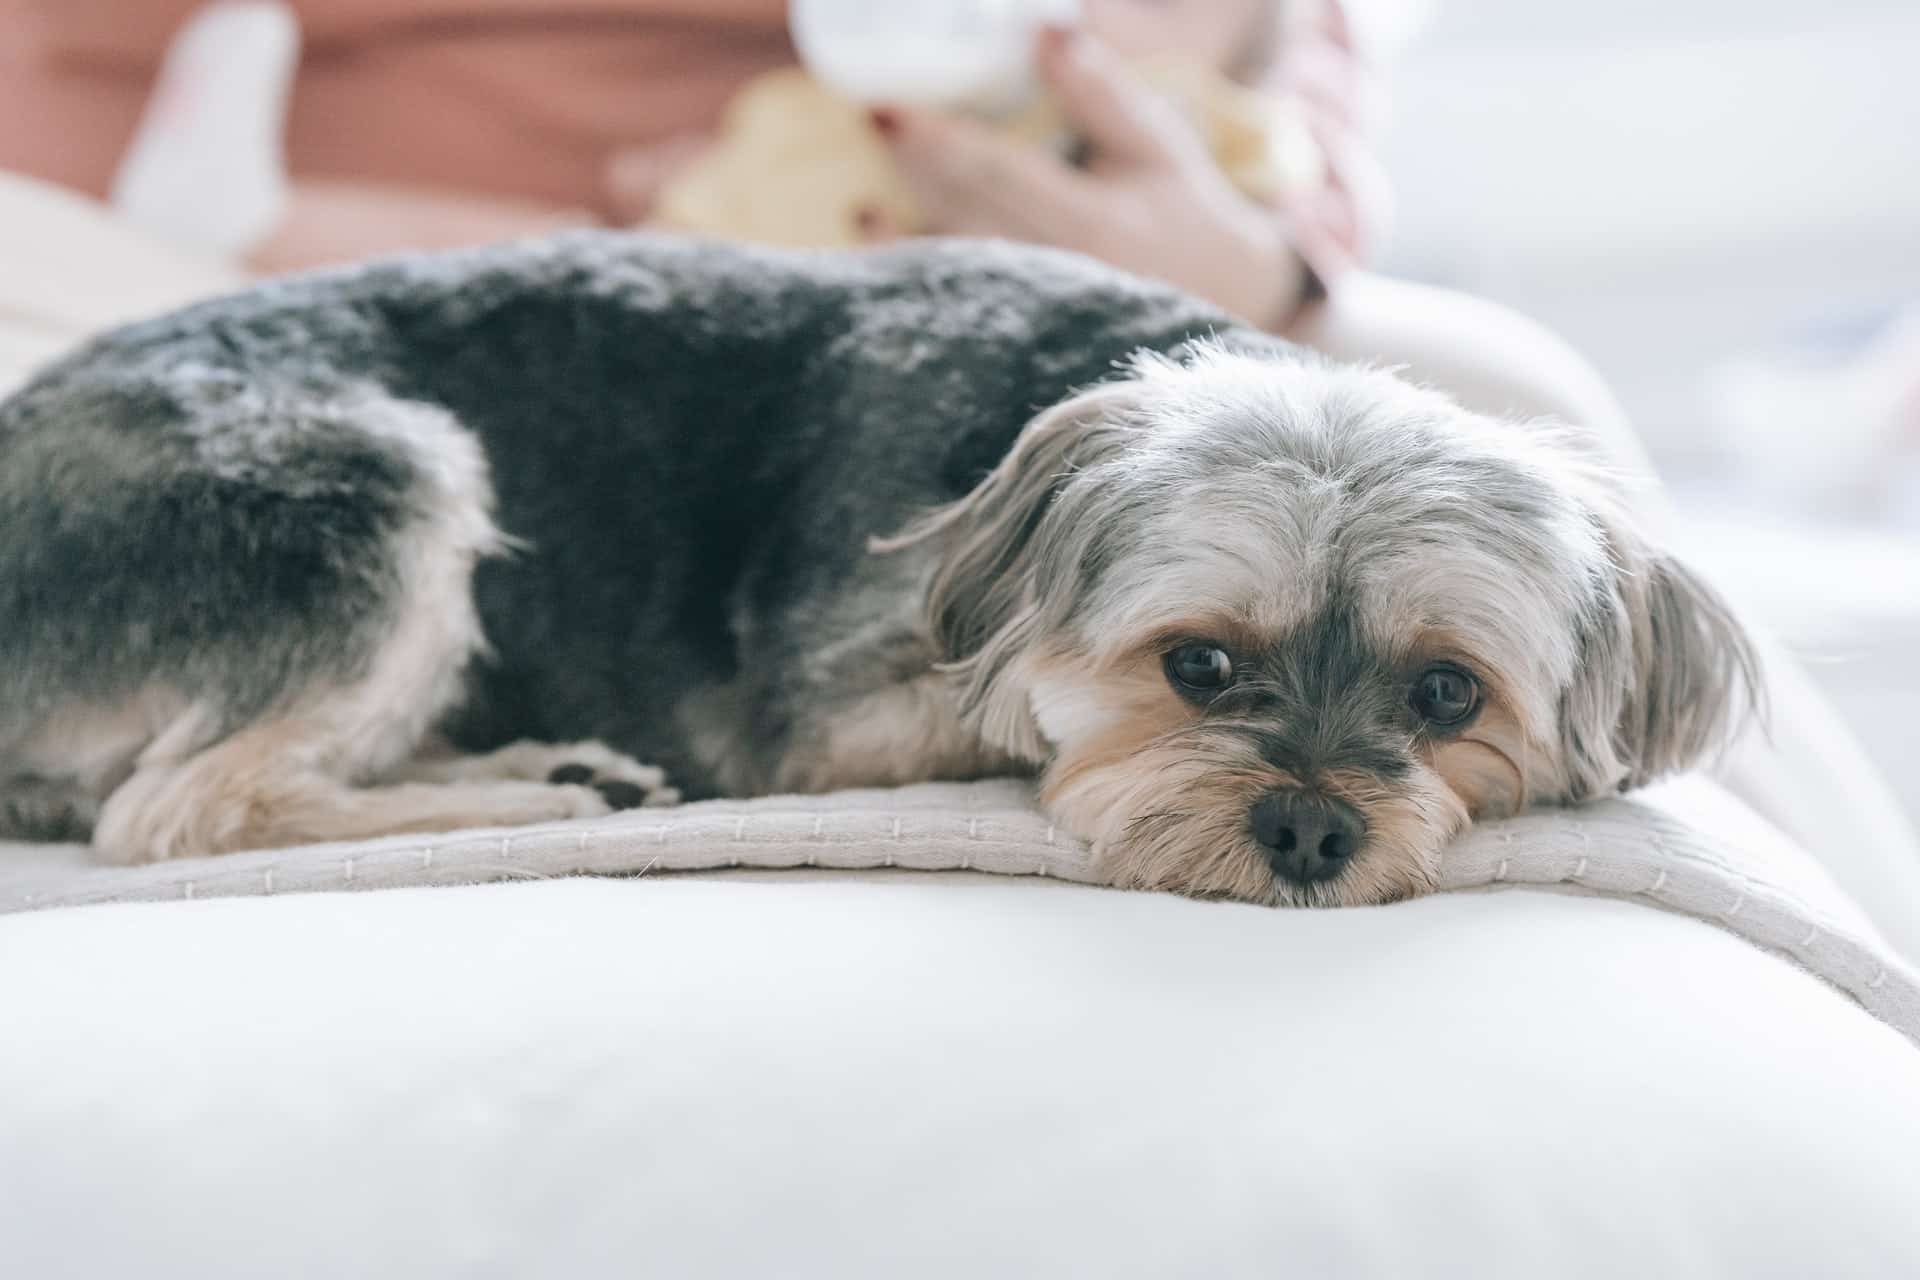 a close up dog laying on a blanket